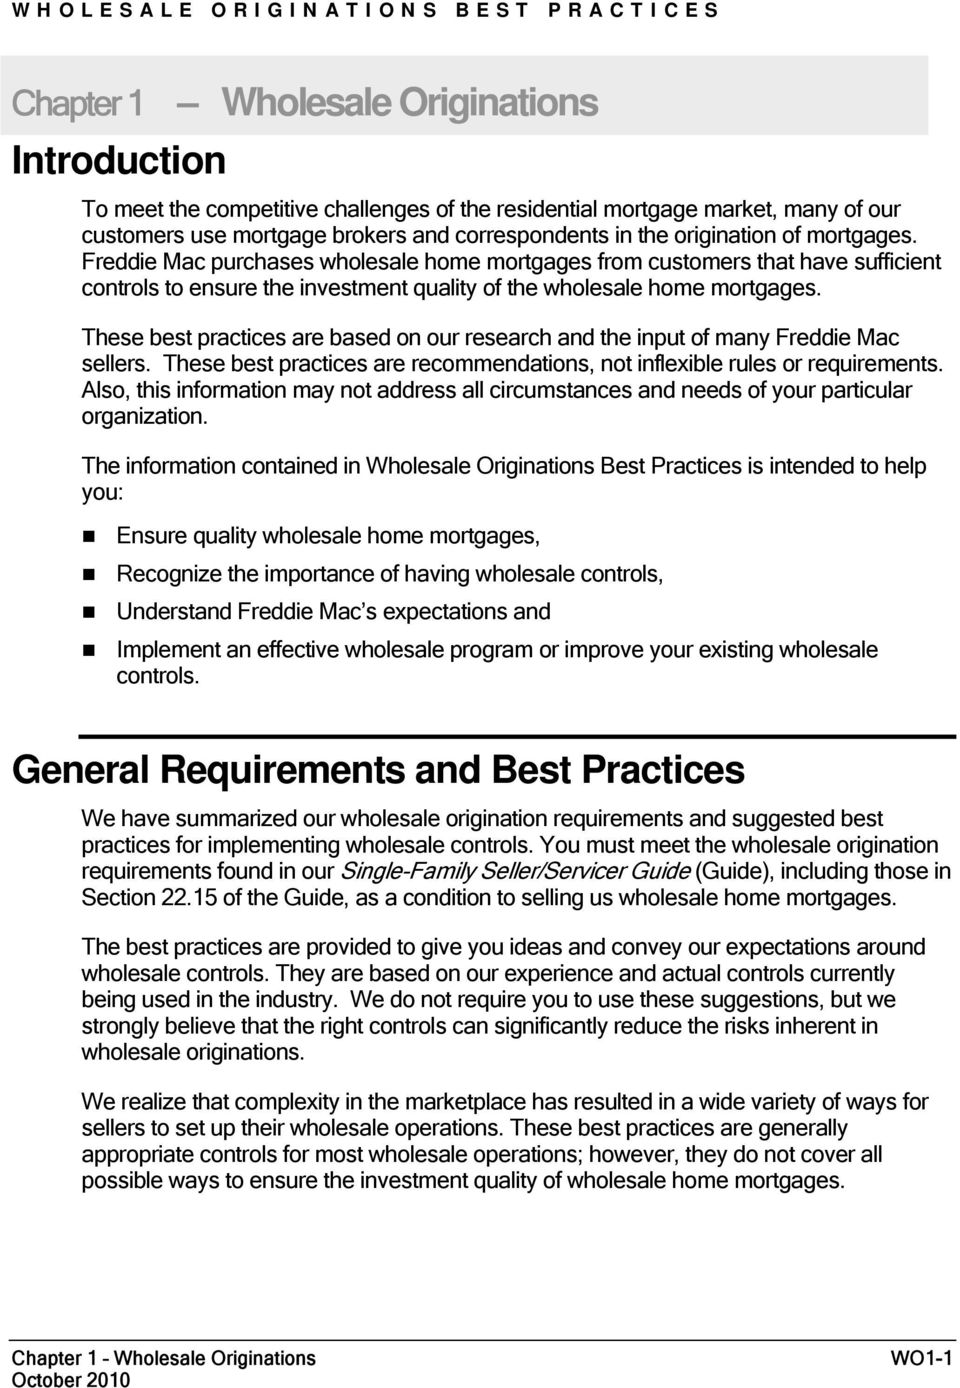 These best practices are based on our research and the input of many Freddie Mac sellers. These best practices are recommendations, not inflexible rules or requirements.